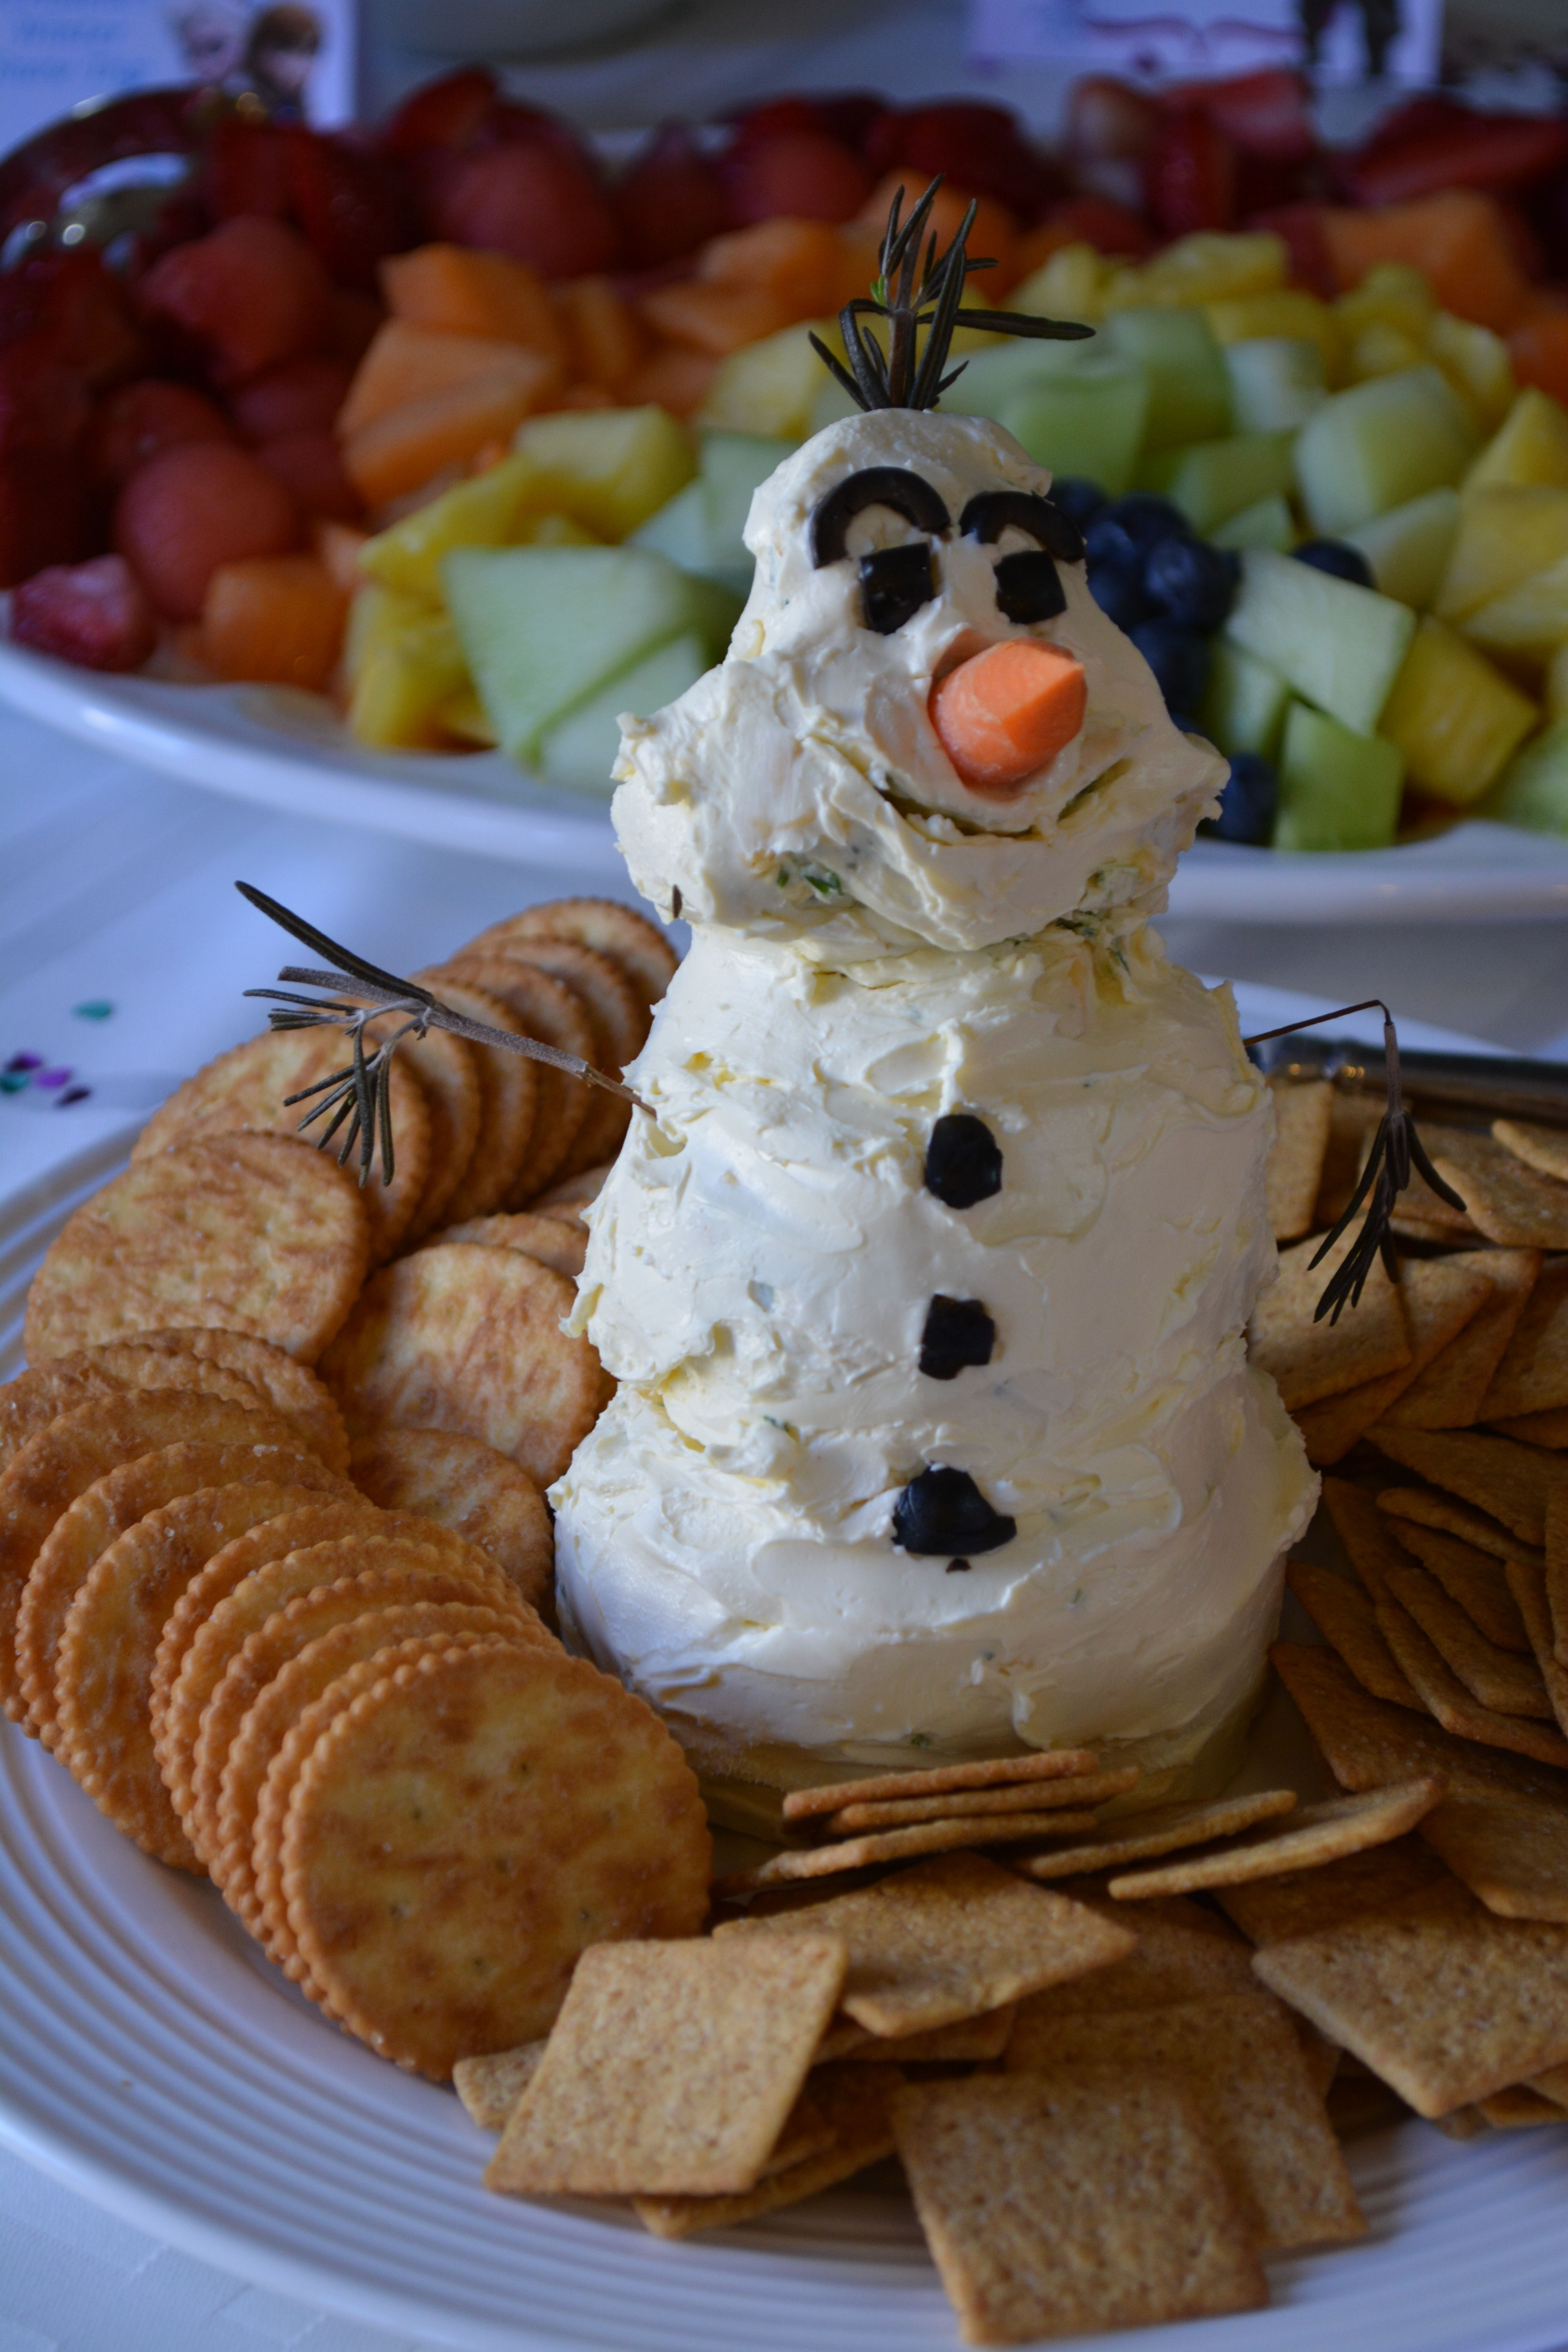 Disney Frozen Olaf cheese ball- Used this recipe but shaped it like Olaf with olives, a carrot stick and rosemary for decorating: http://www.shesaved.com/2013/11/snowman-cheeseball-inspired-disneys-frozen-disneyfrozenevent.html/#_a5y_p=1233230